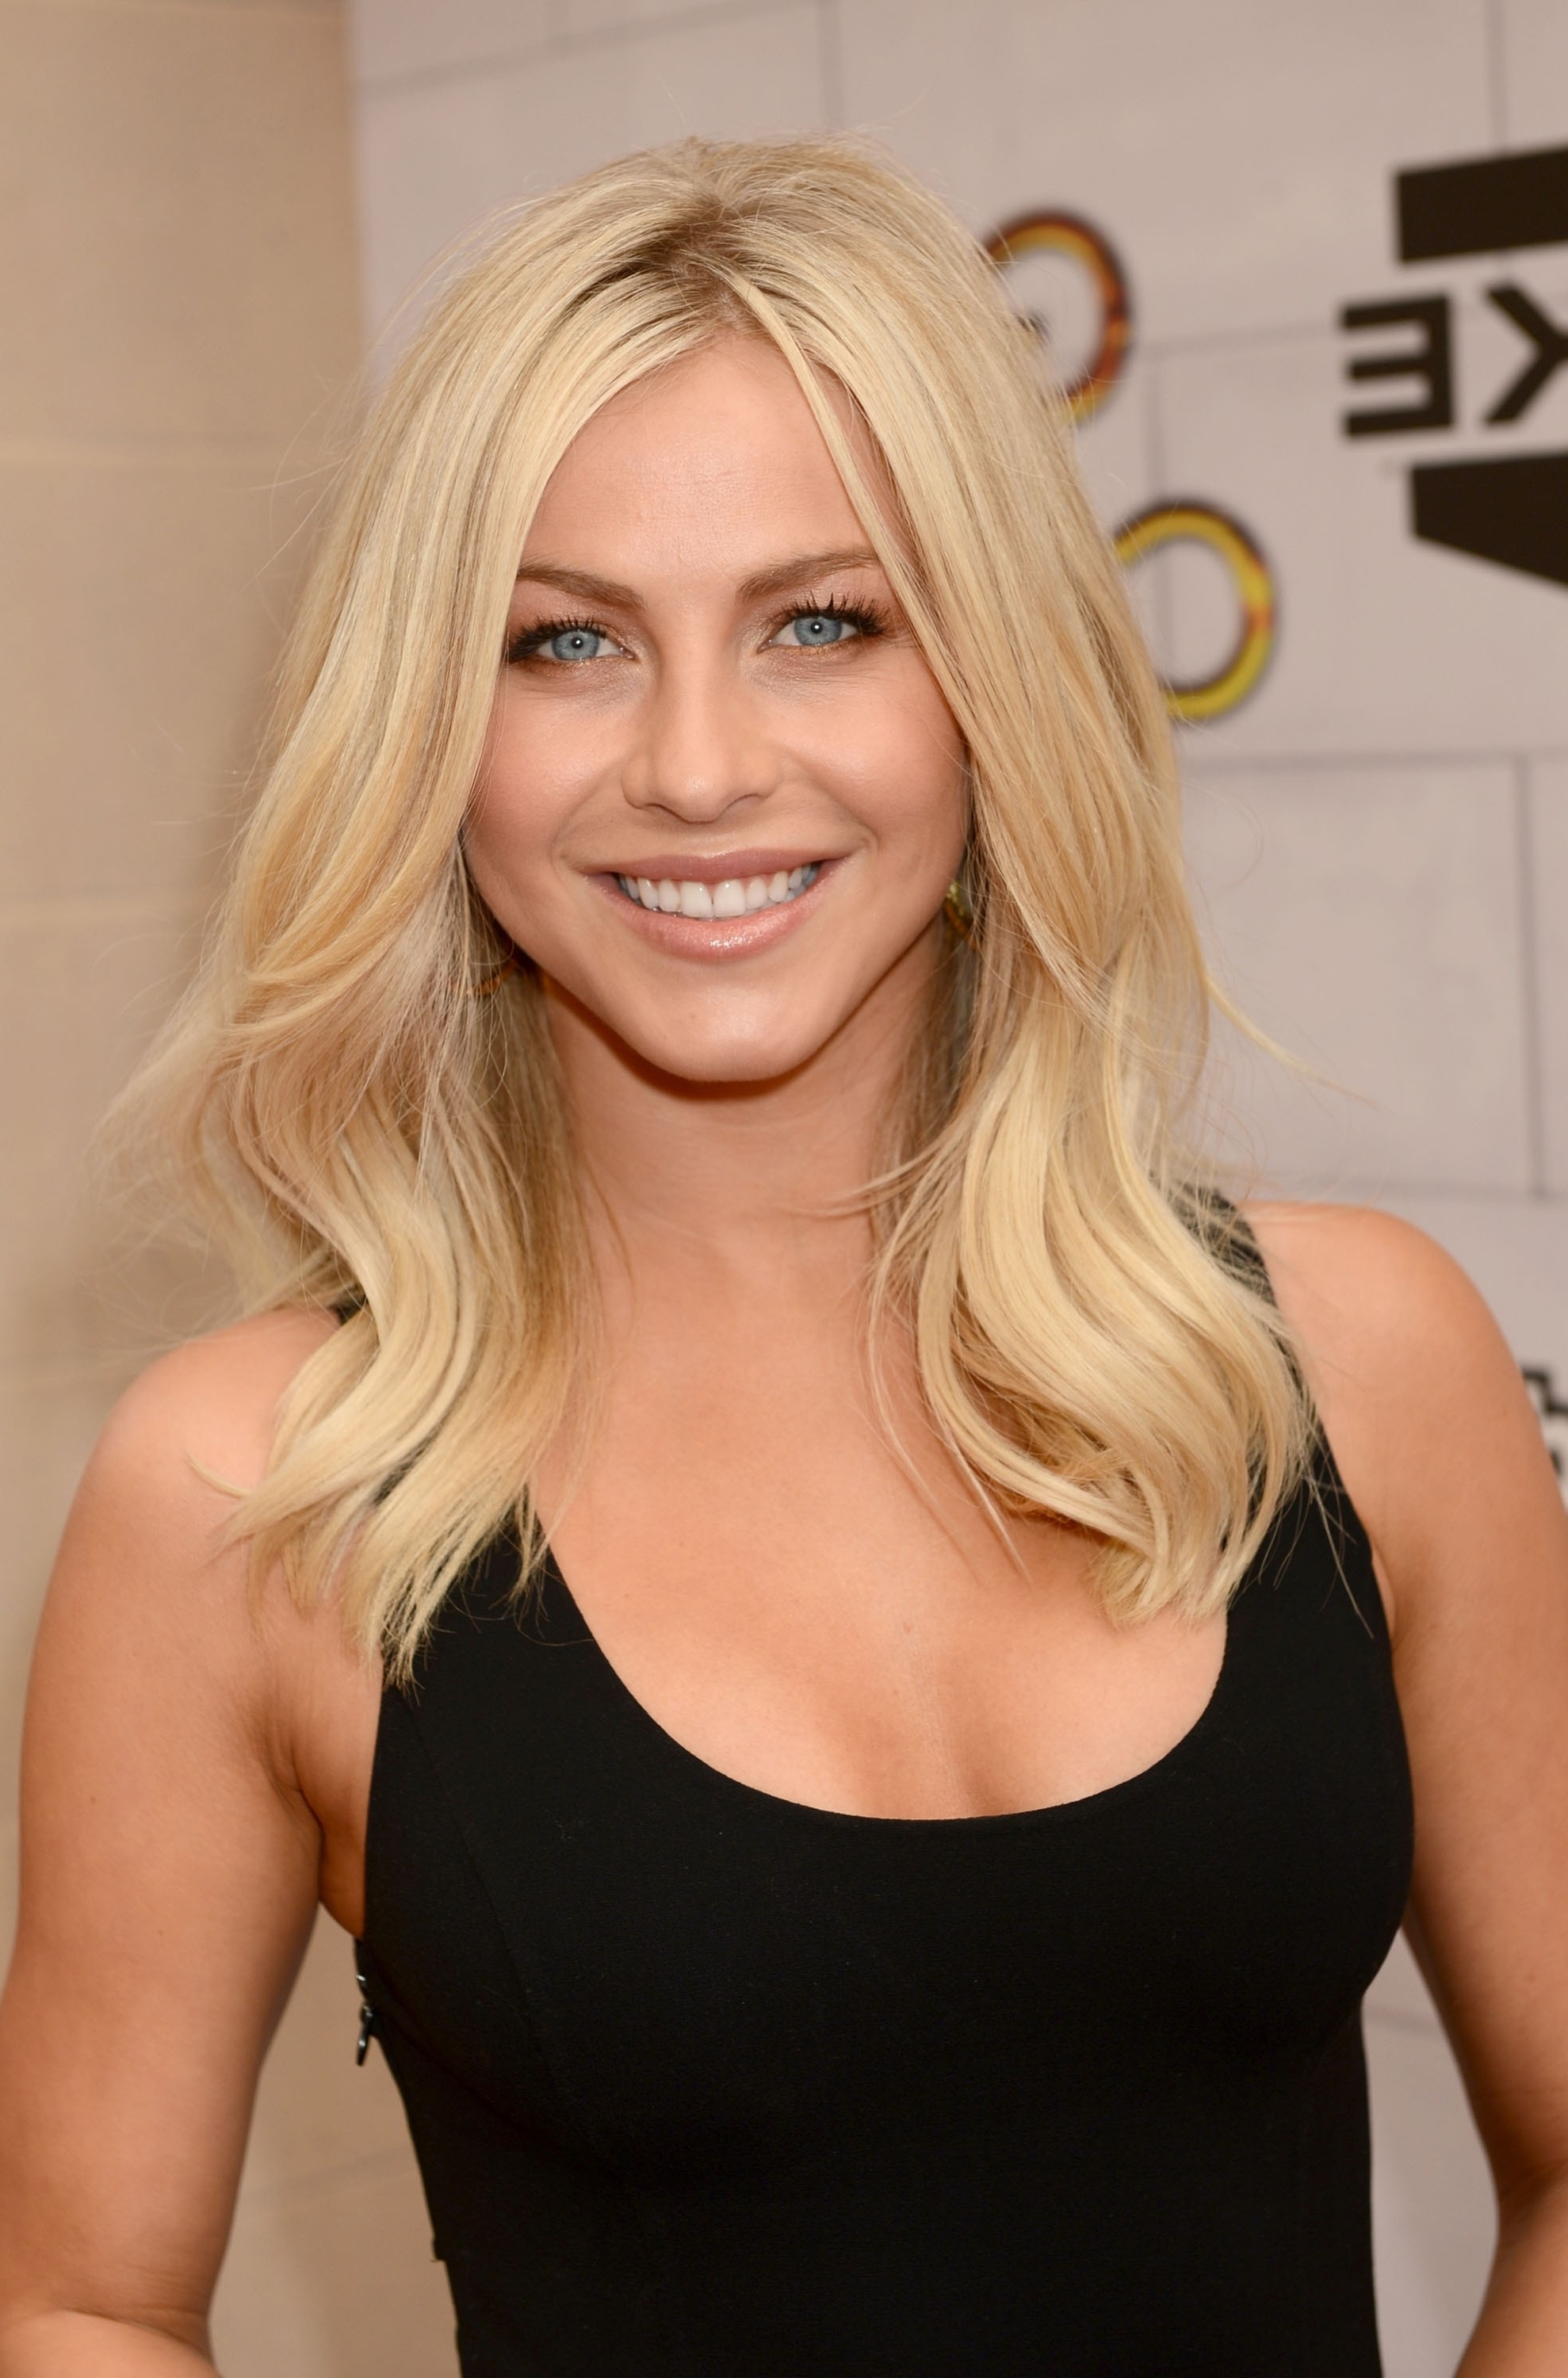 The 30 Best Blonde Hairstyles To Try In 2016